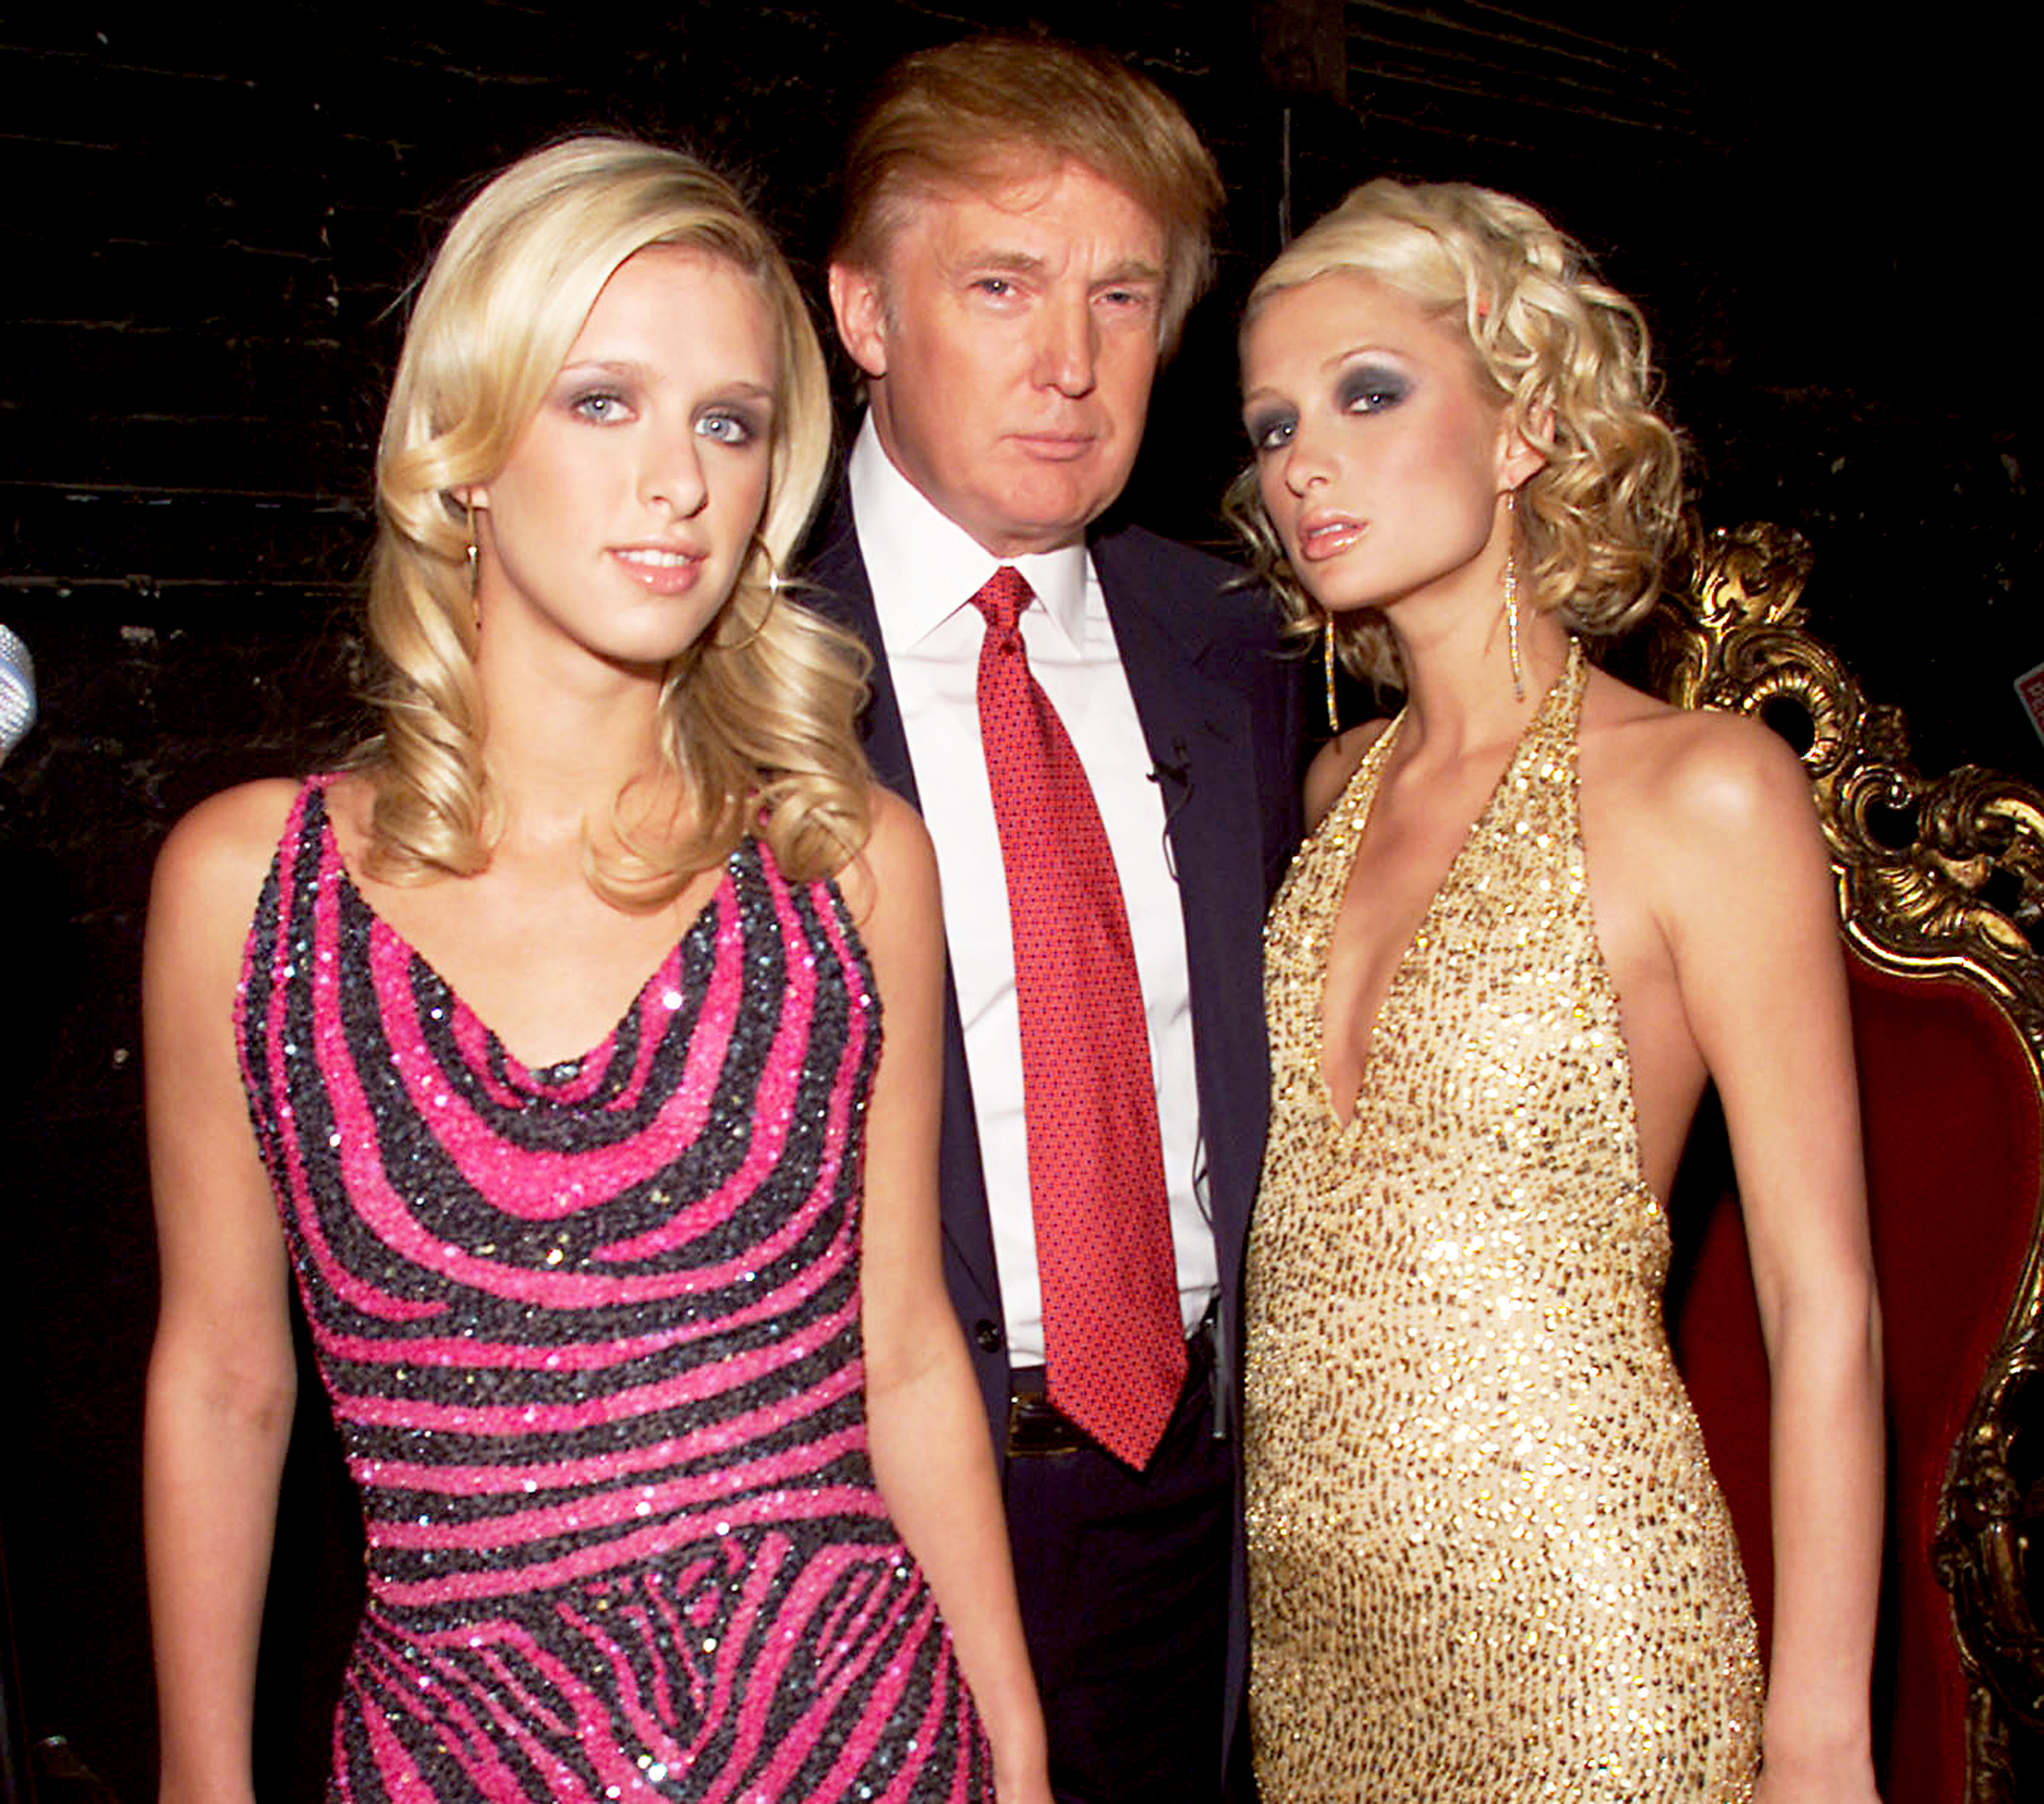 Nicky Hilton, Donald Trump and Paris Hilton